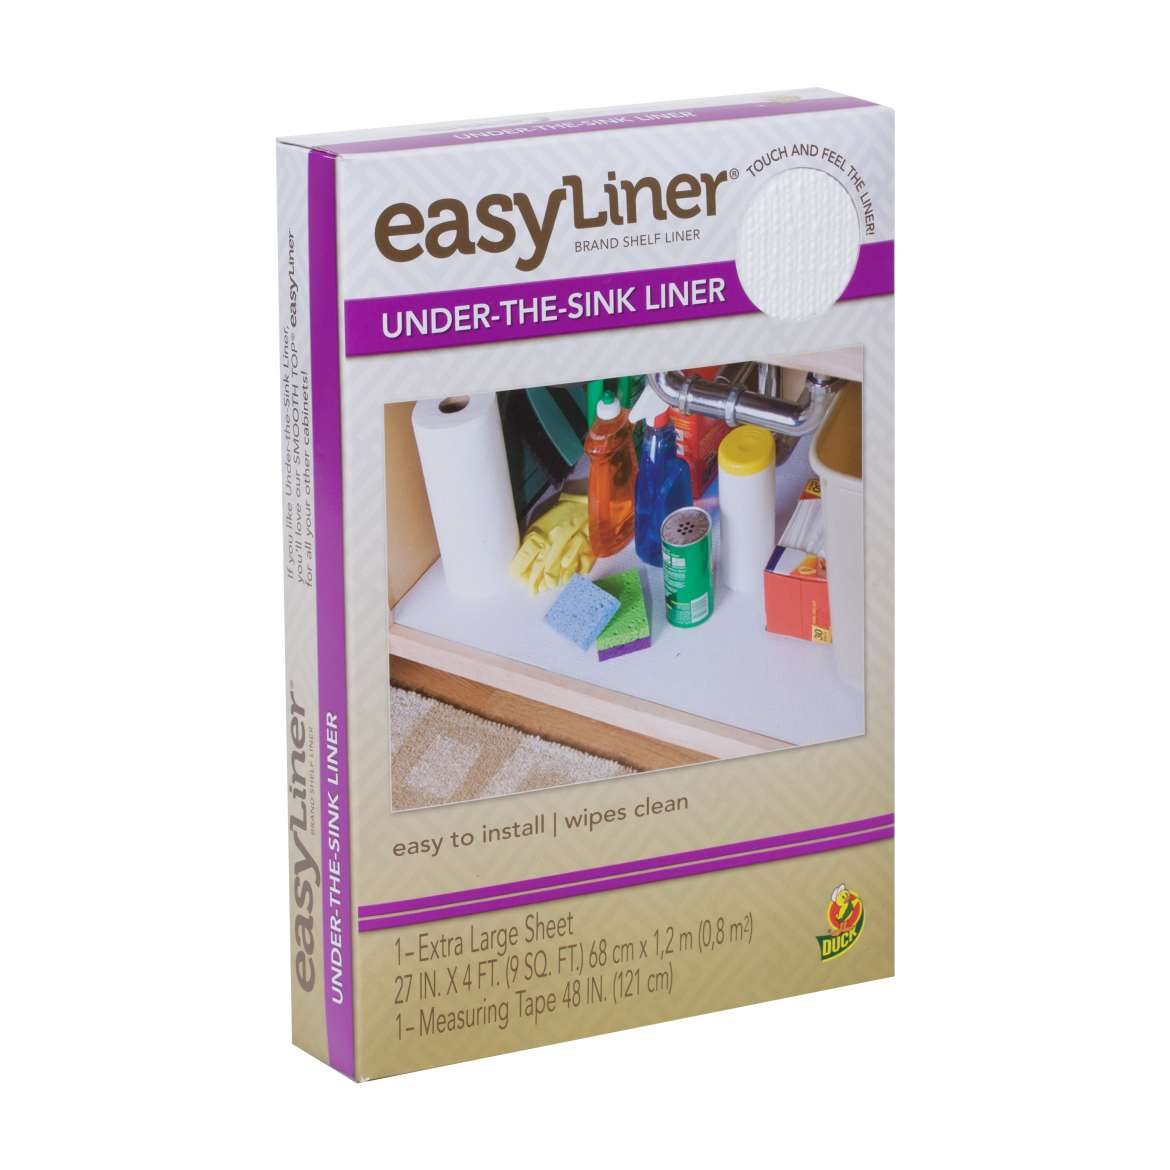 Easy Liner® Under-the-Sink Liner - White, 27 in. x 4 ft. Image